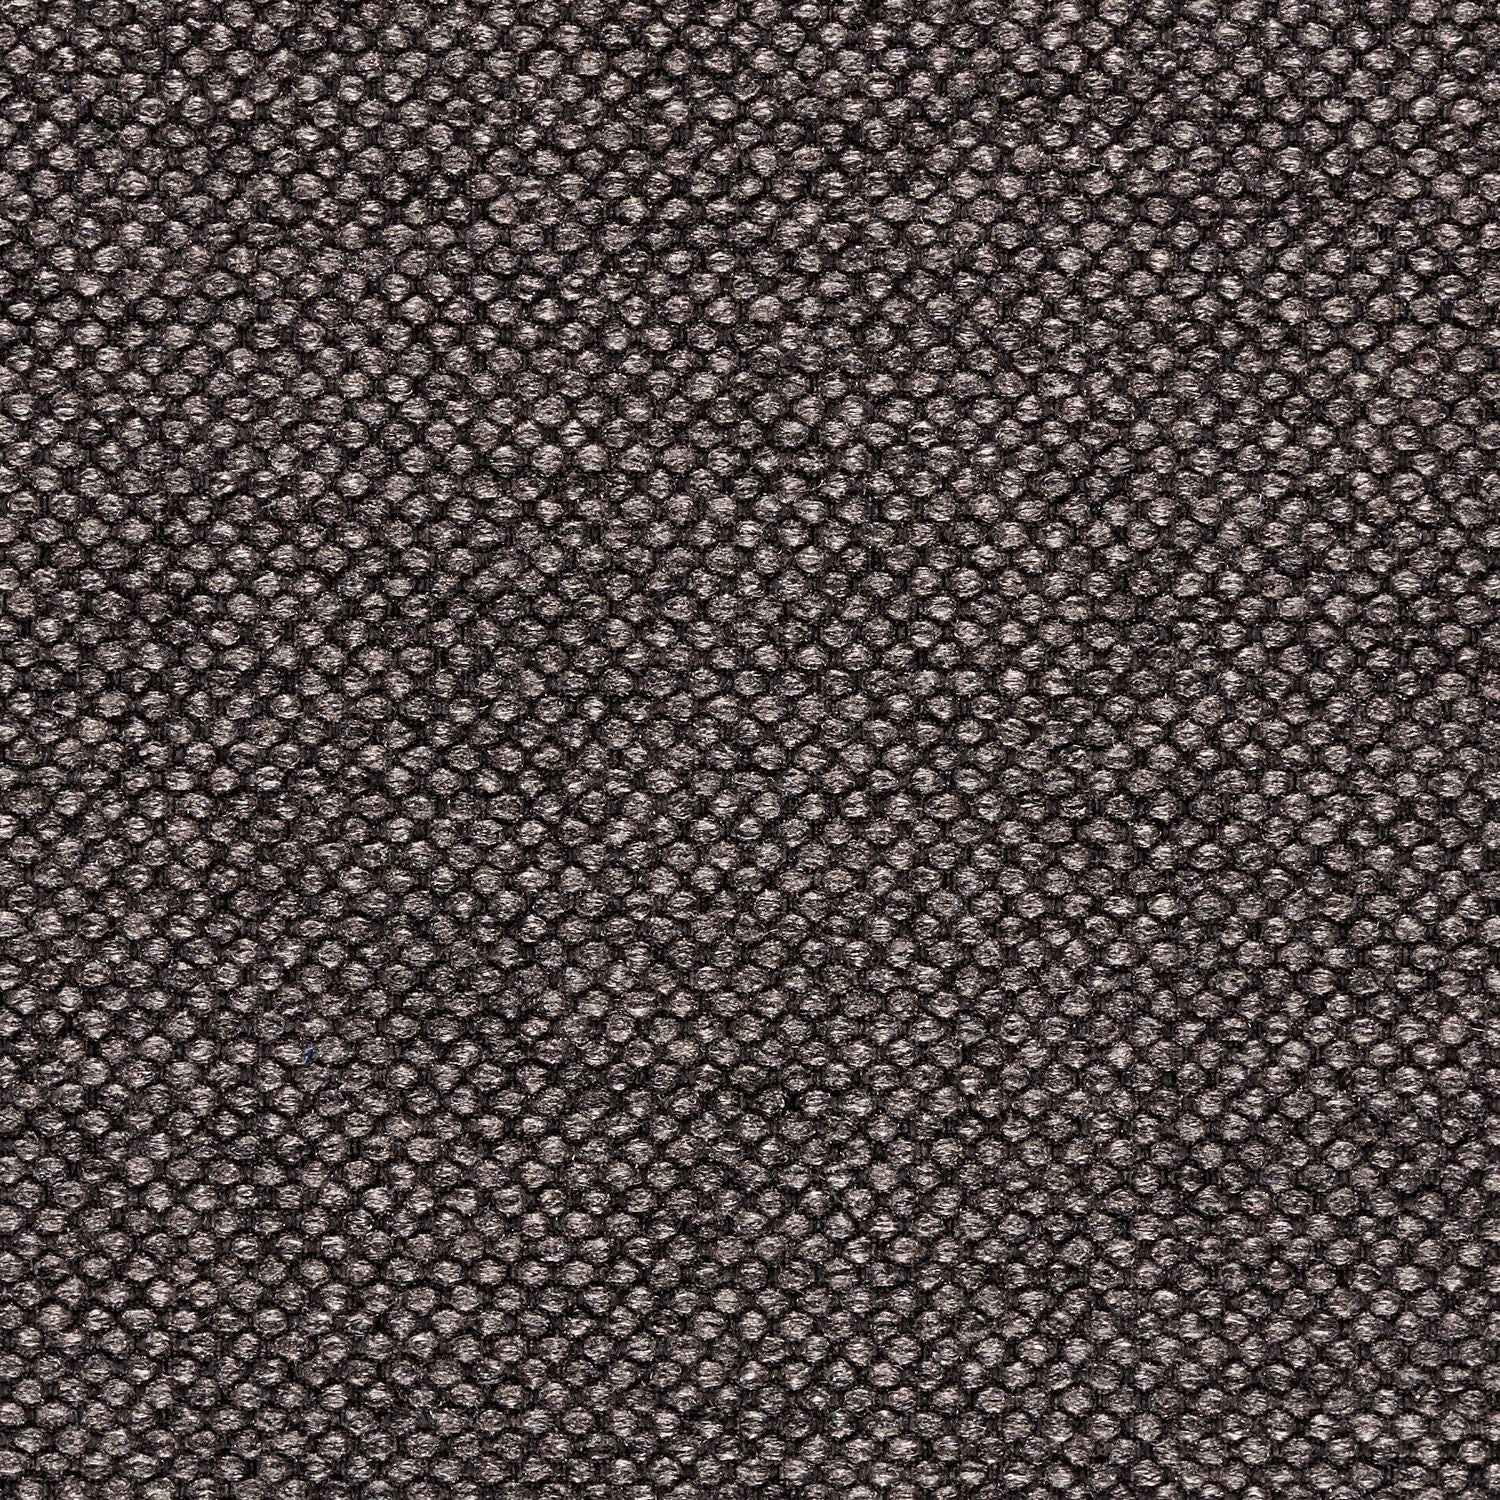 Digi Tweed - Obsidian Tweed - 4058 - 24